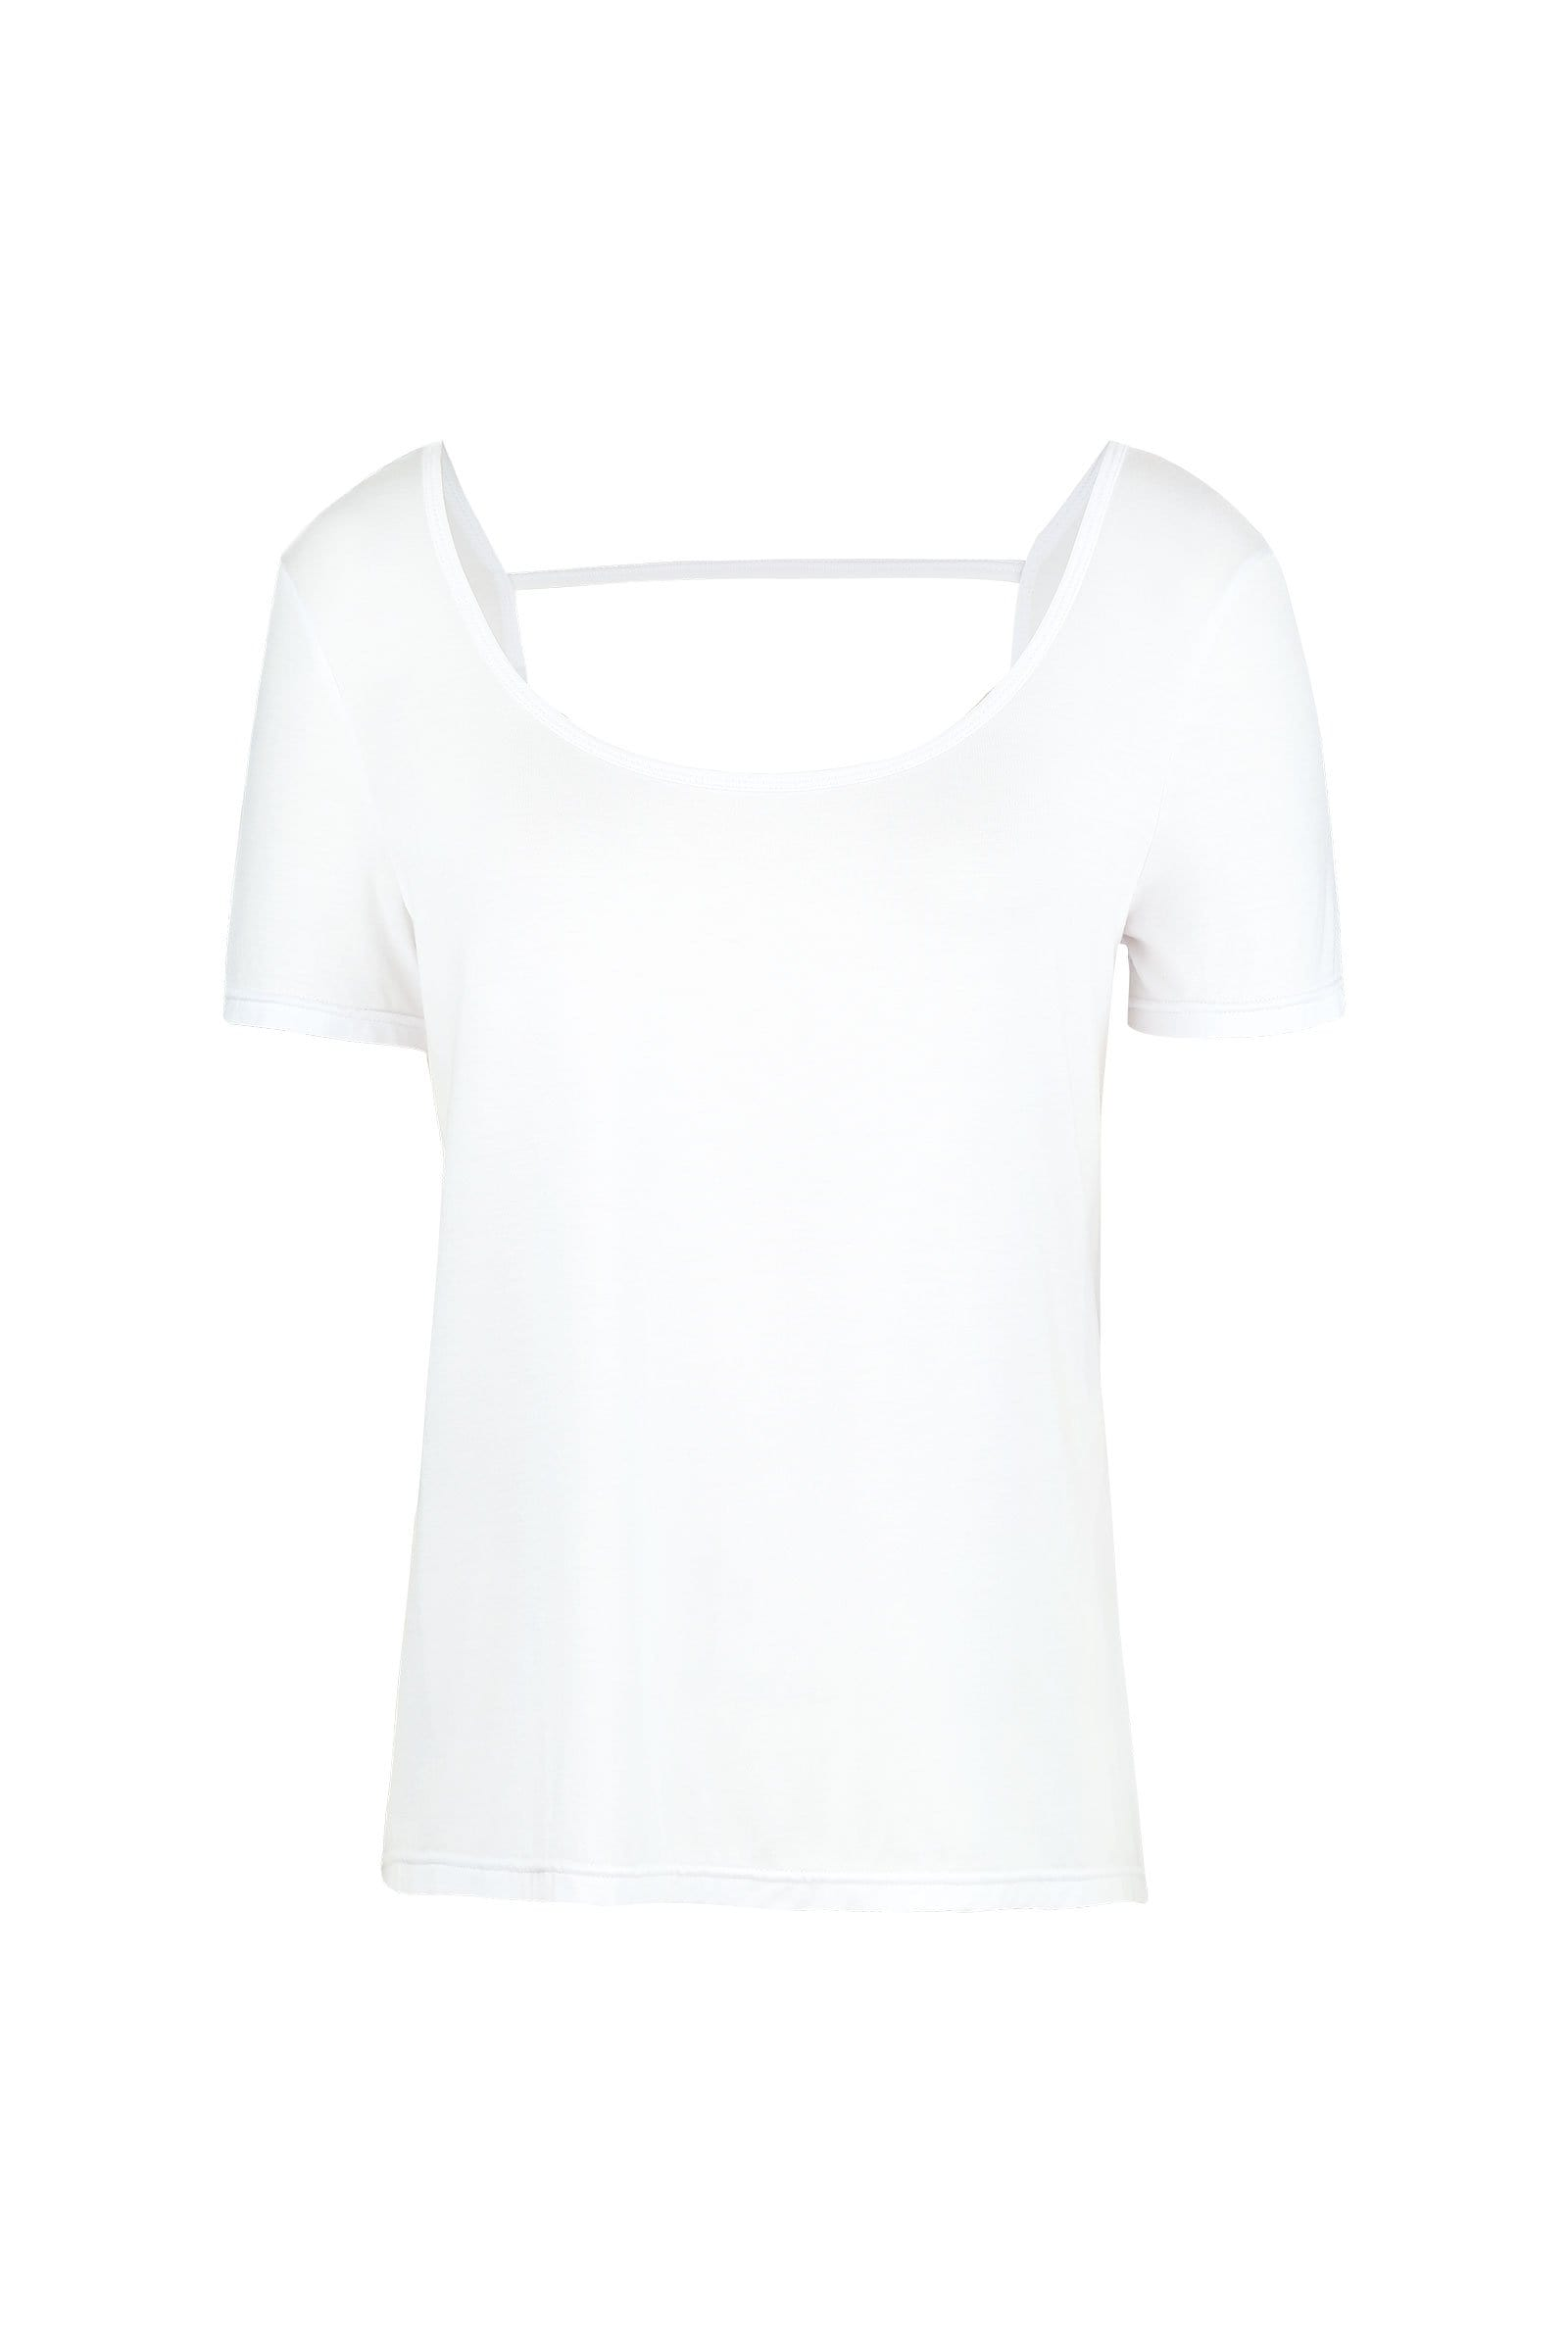 Canyon White Backless Active Tee